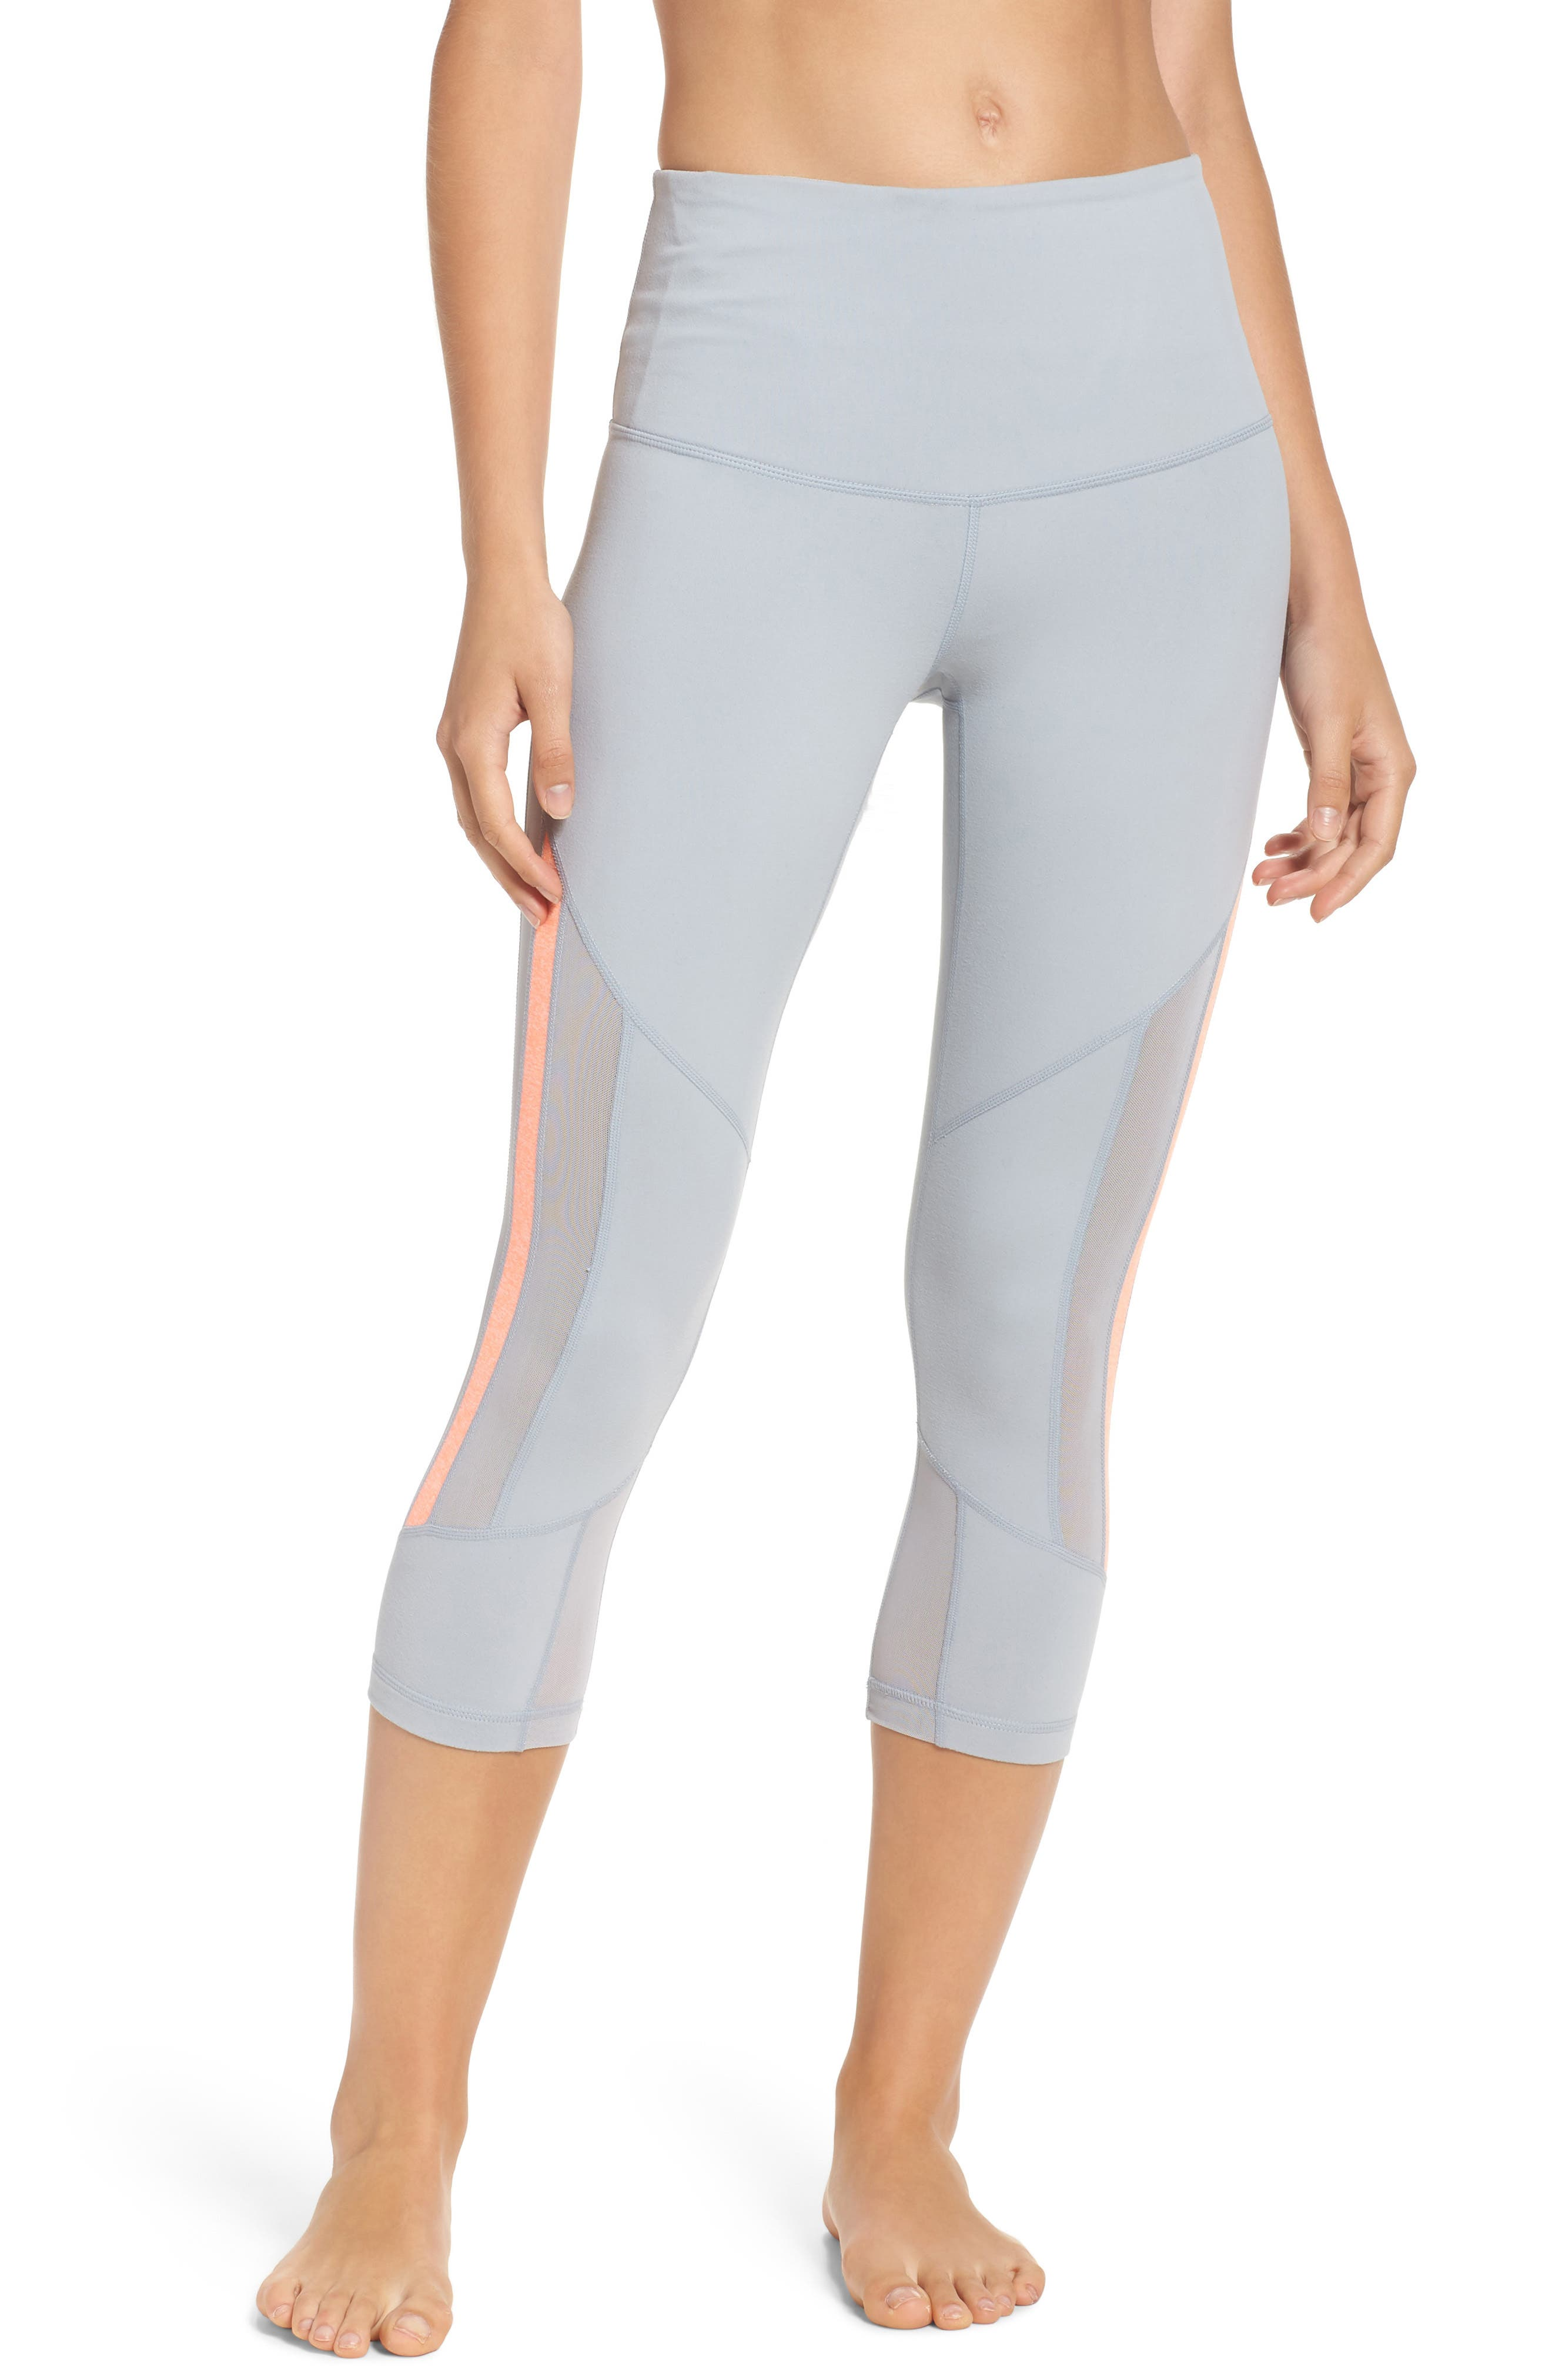 Zella Sheer to There High Waist Crop Leggings